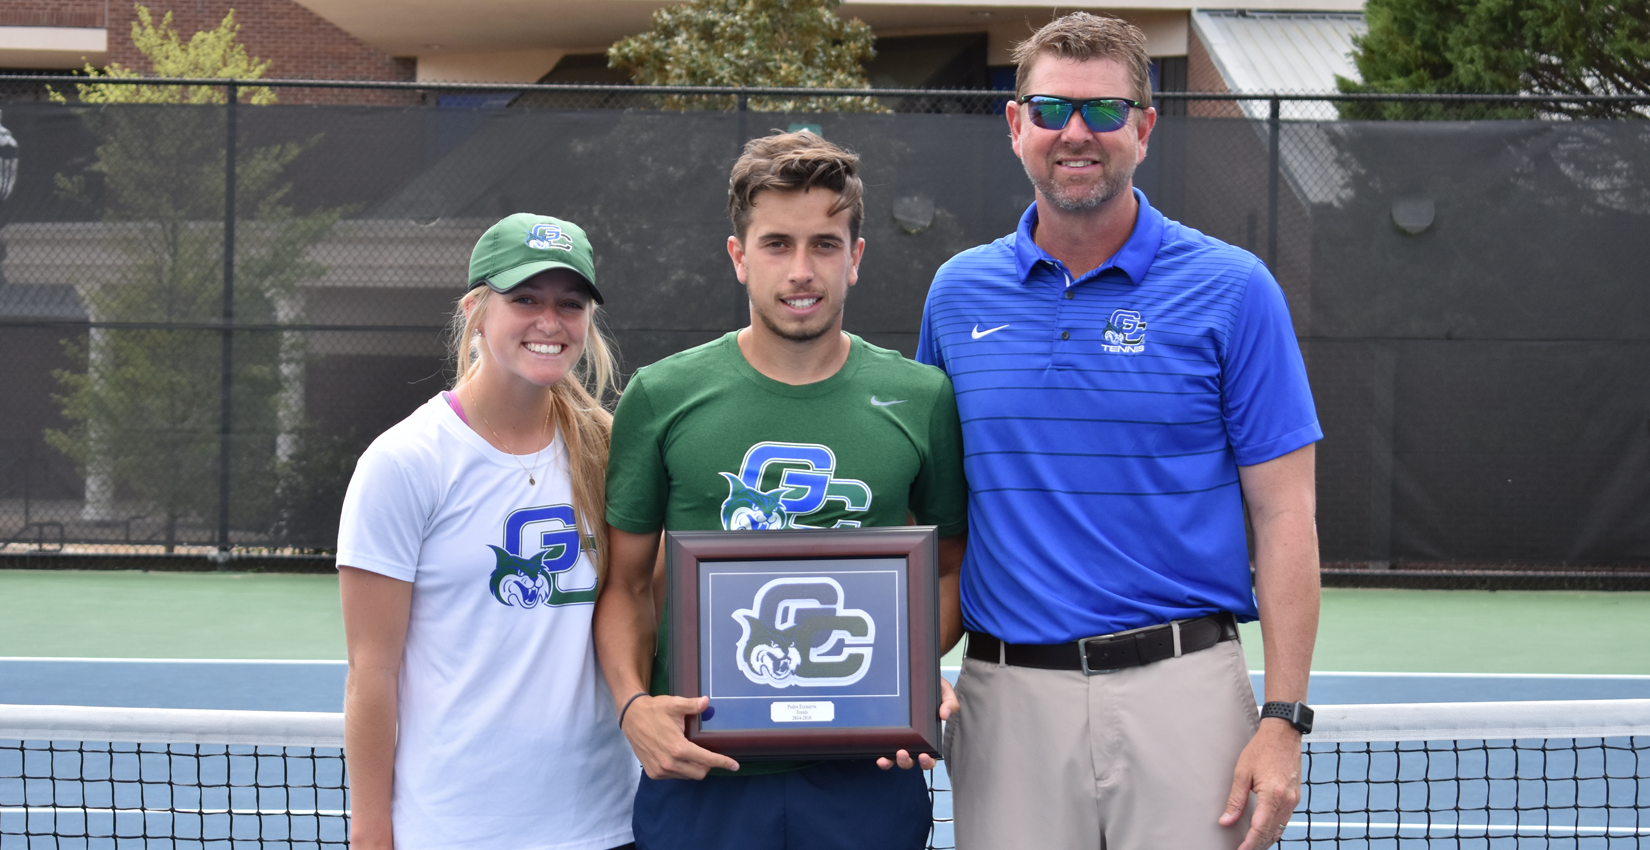 Assistant coach Katie Krupp, senior Pedro Ecenarro and head coach Steve Barsby